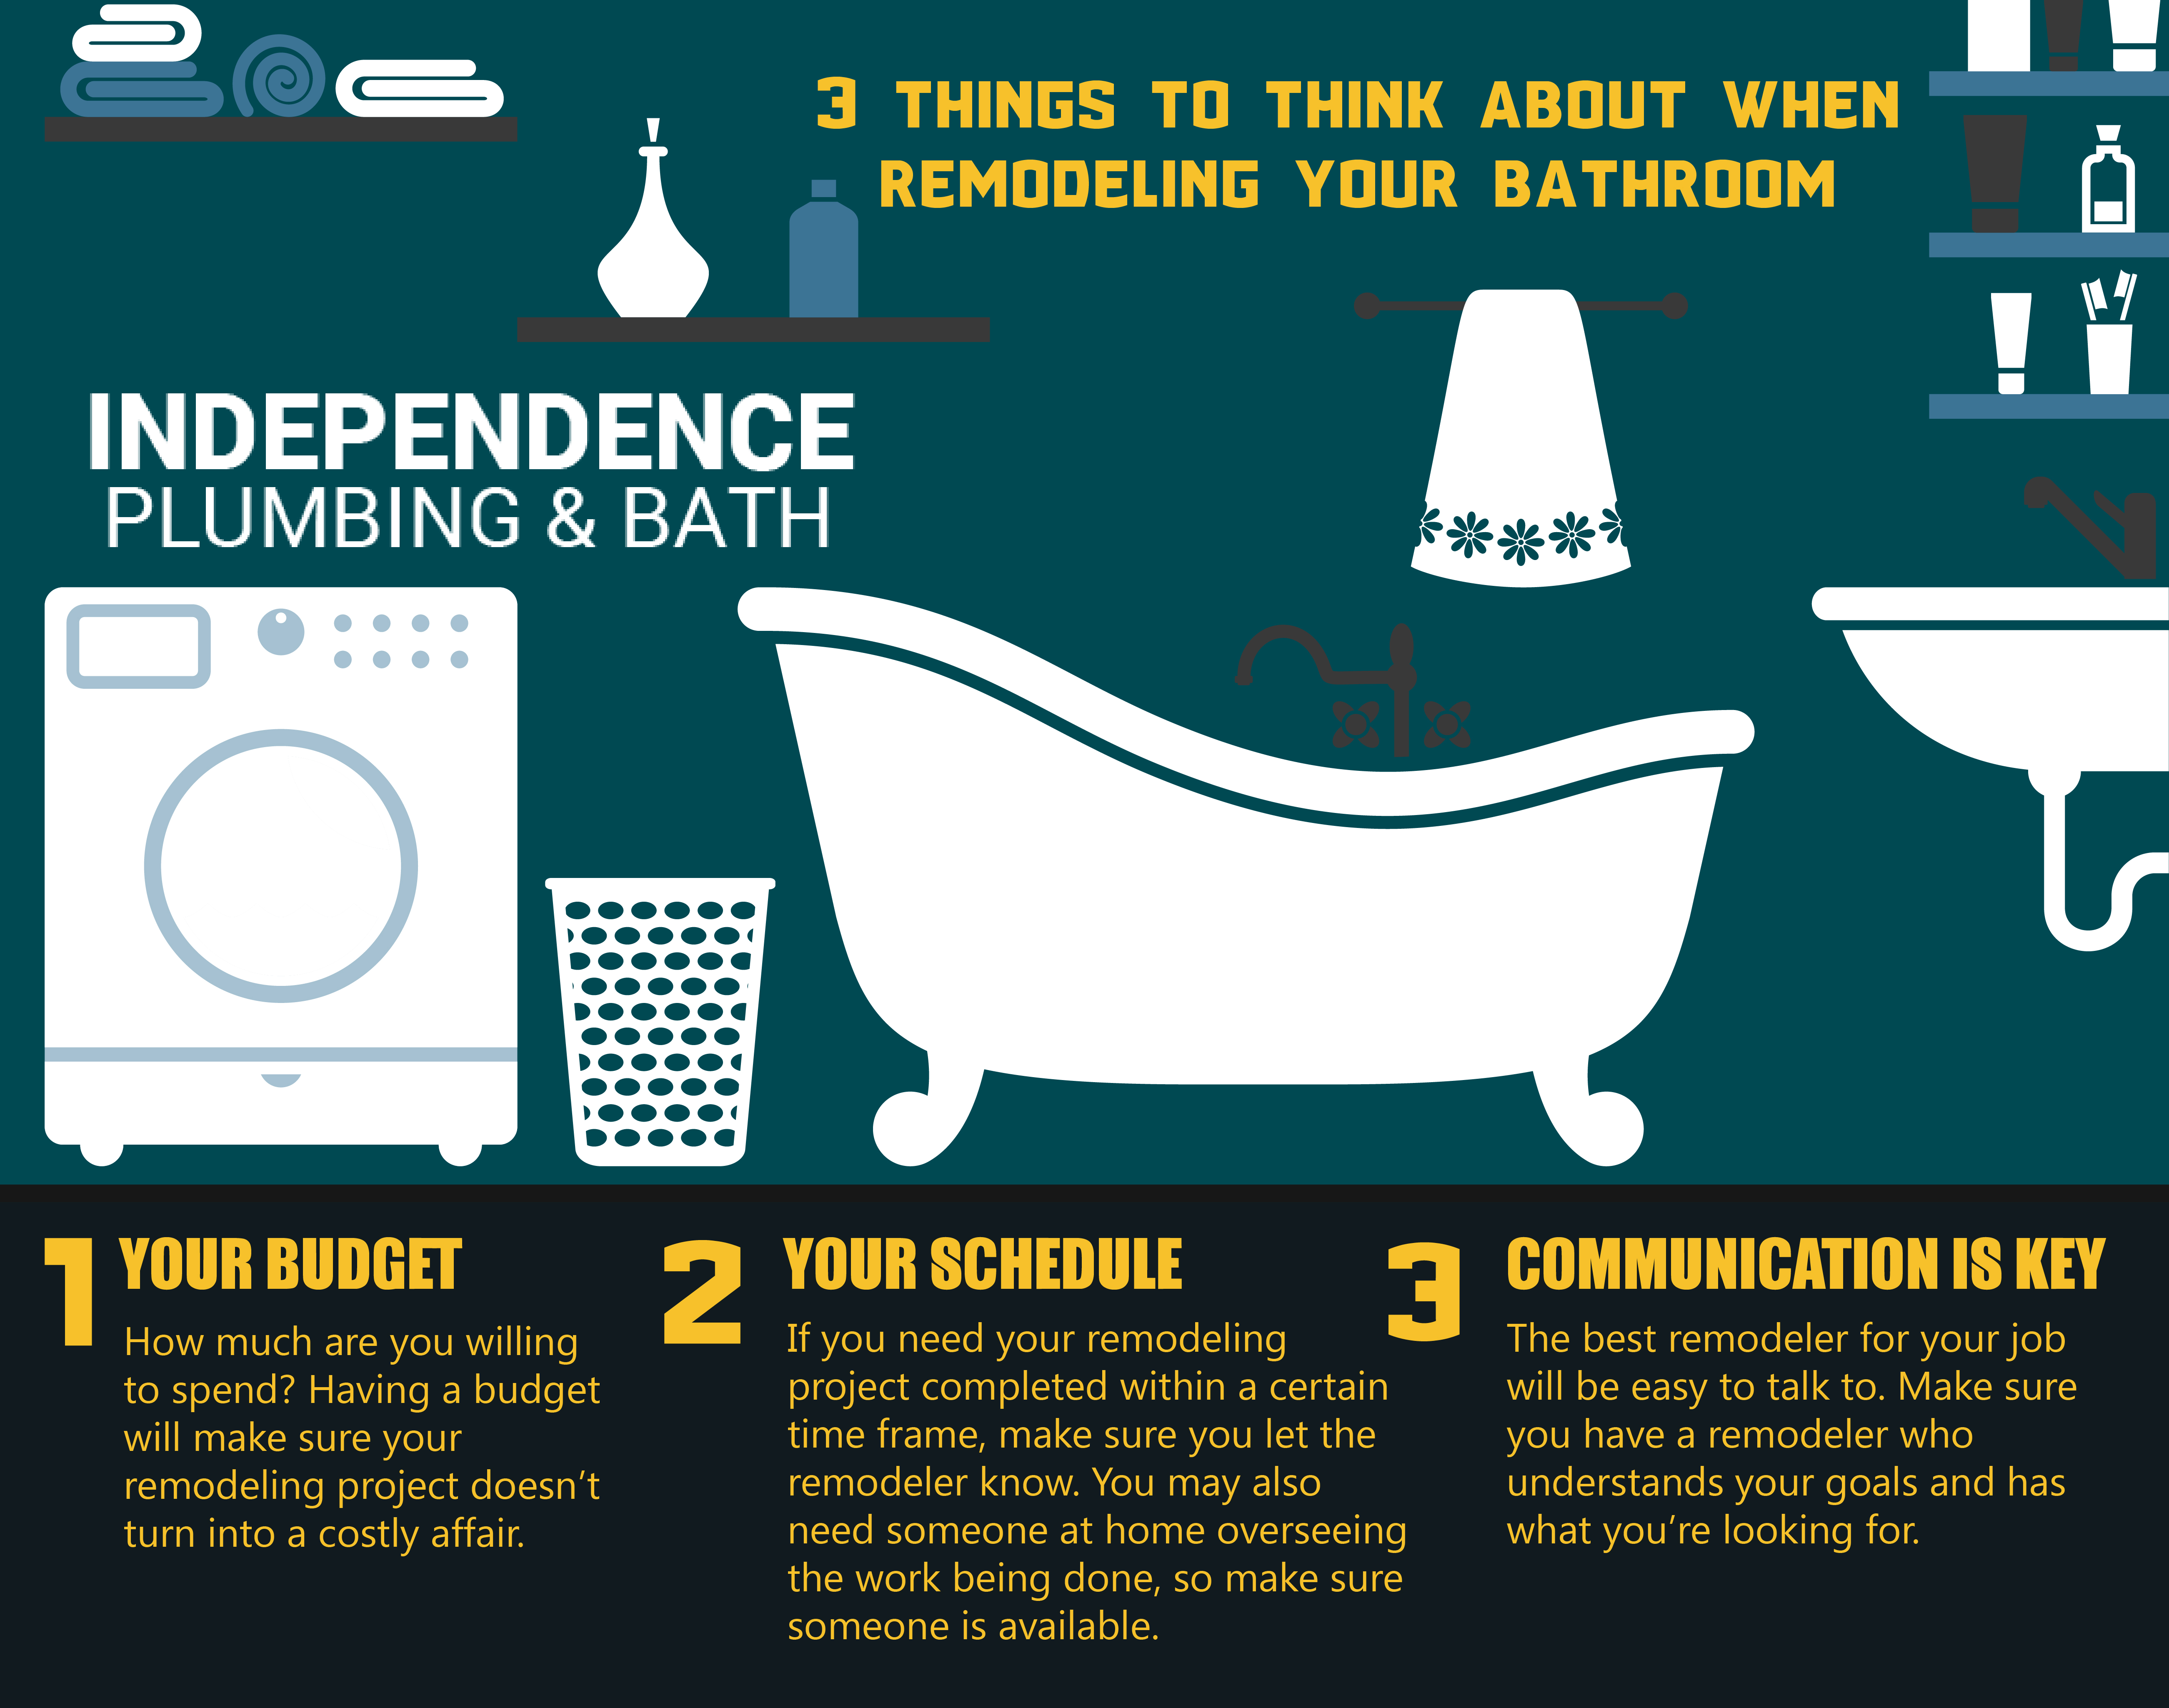 3 Things To Think About When Remodeling Your Bathroom   Independence